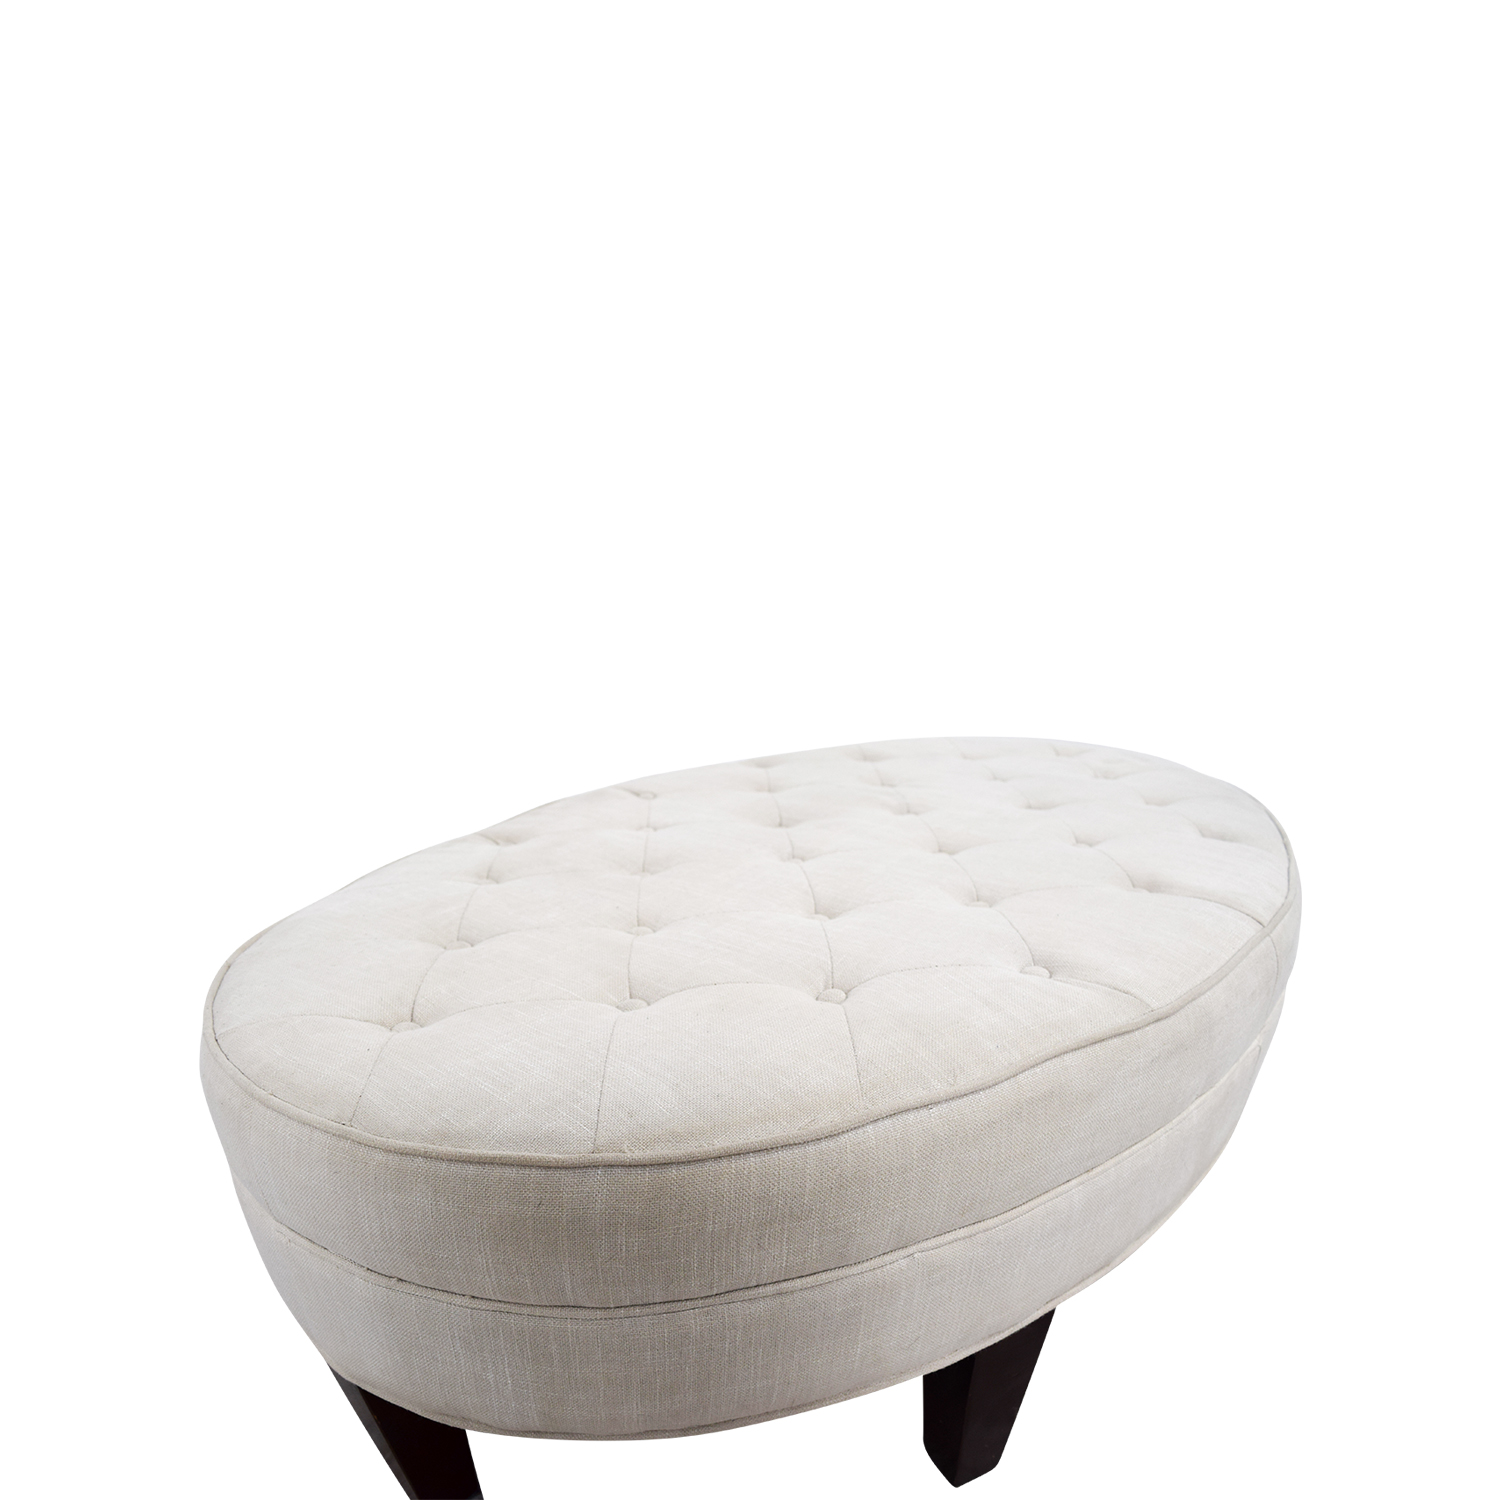 86 Off Oval Tufted Ottoman Chairs